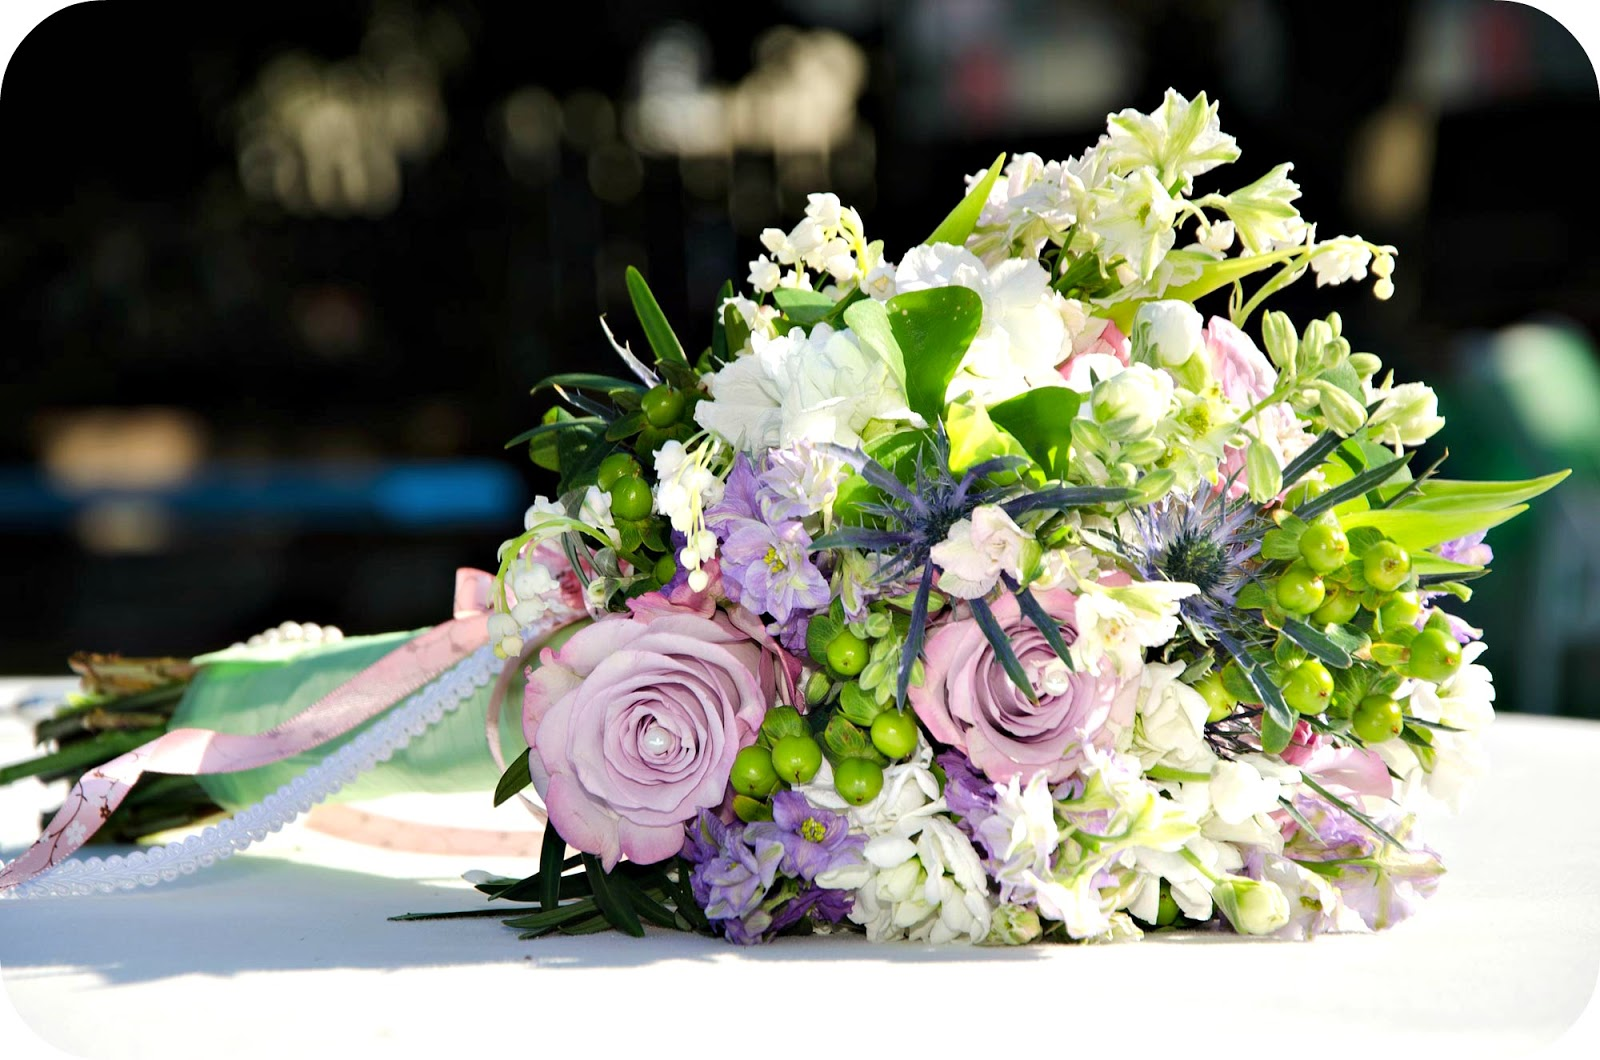 Bridal Bouquet from rgbstock.com